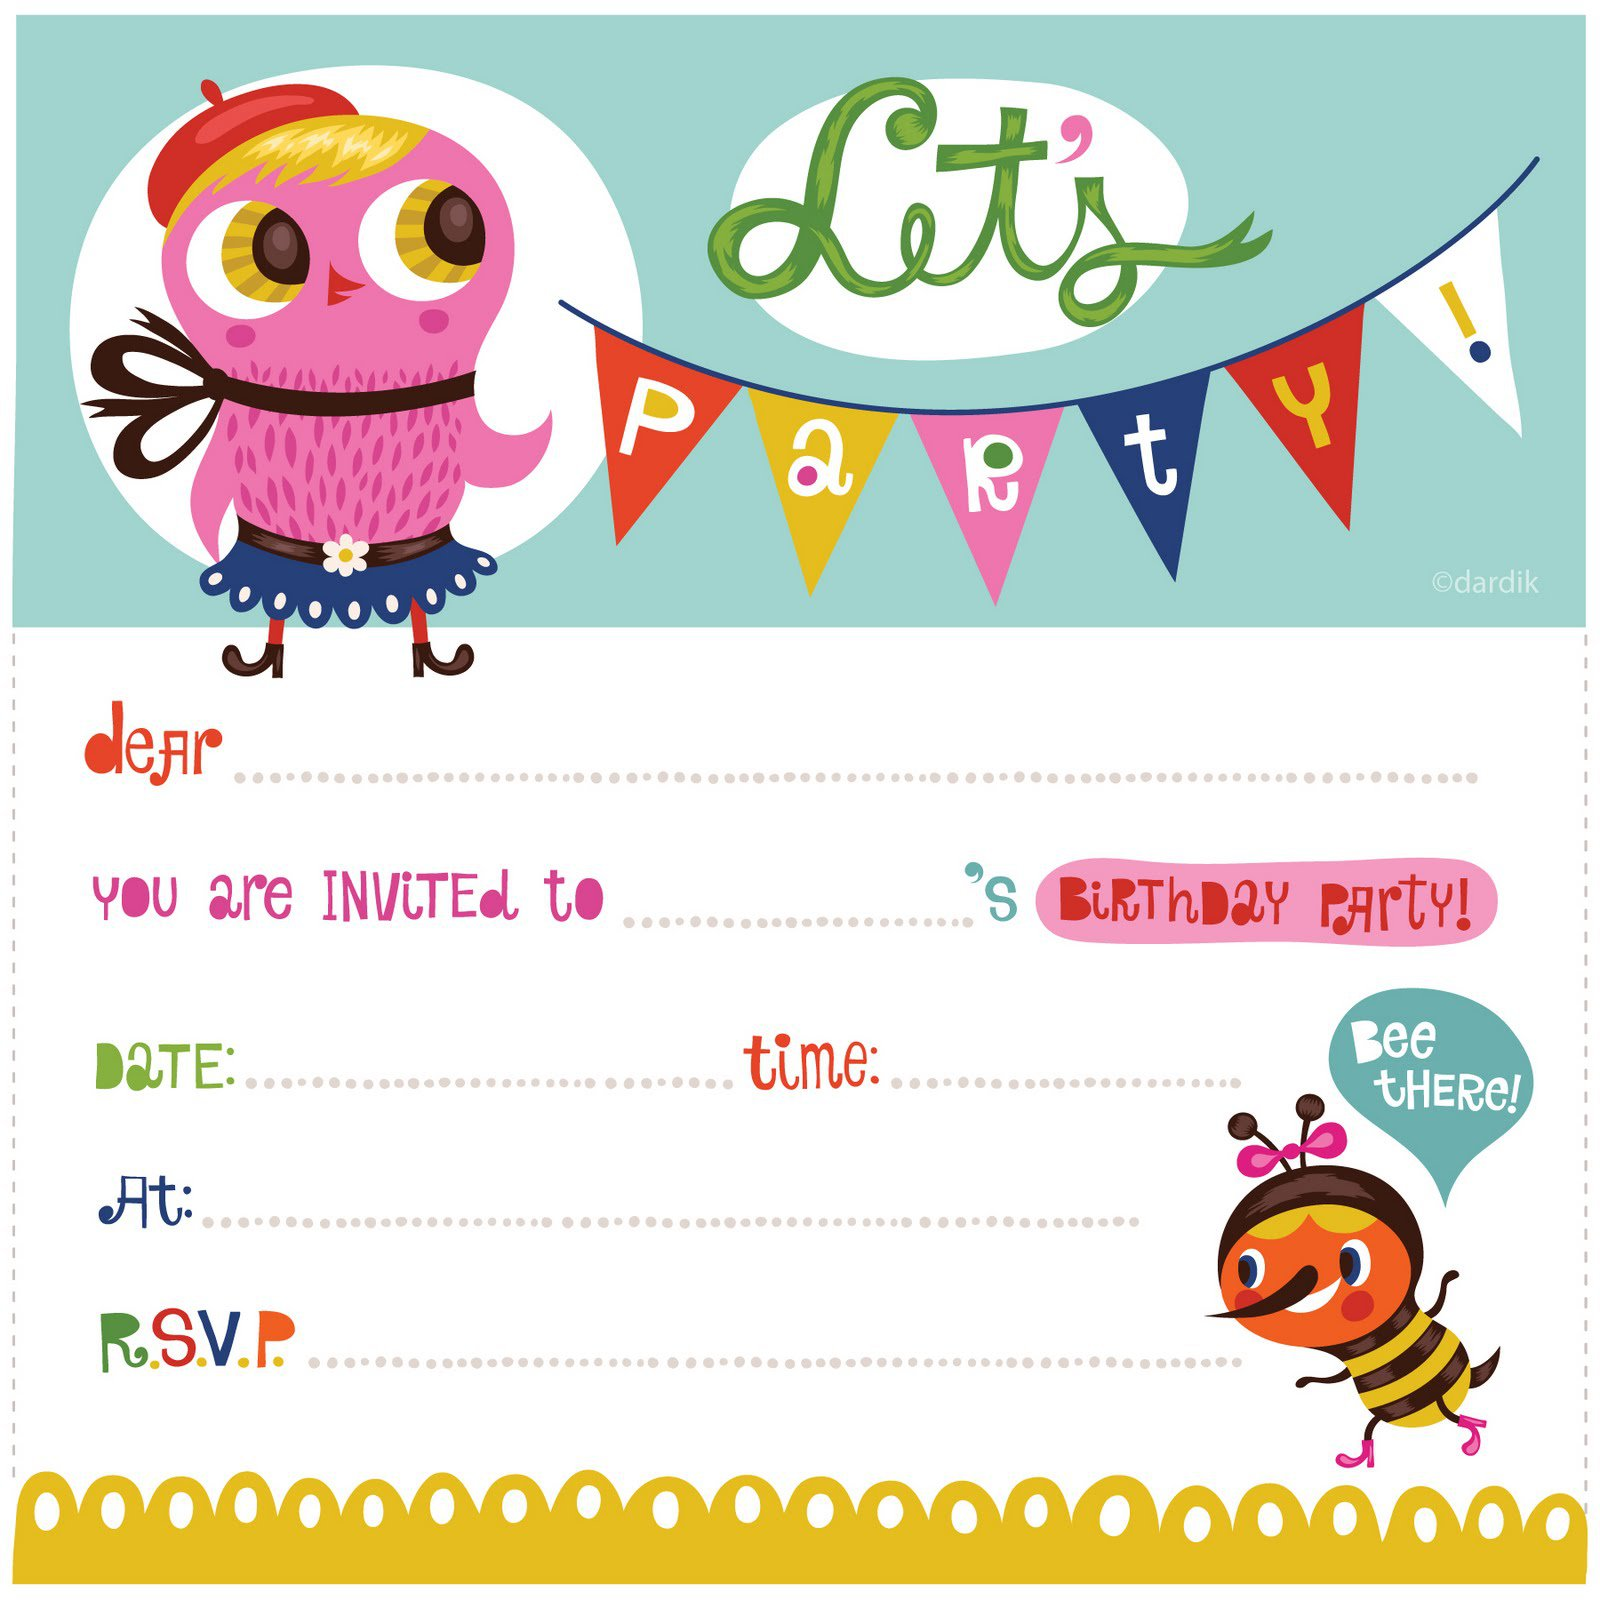 birthday invitation card template with photo ; birthday-invitation-card-format